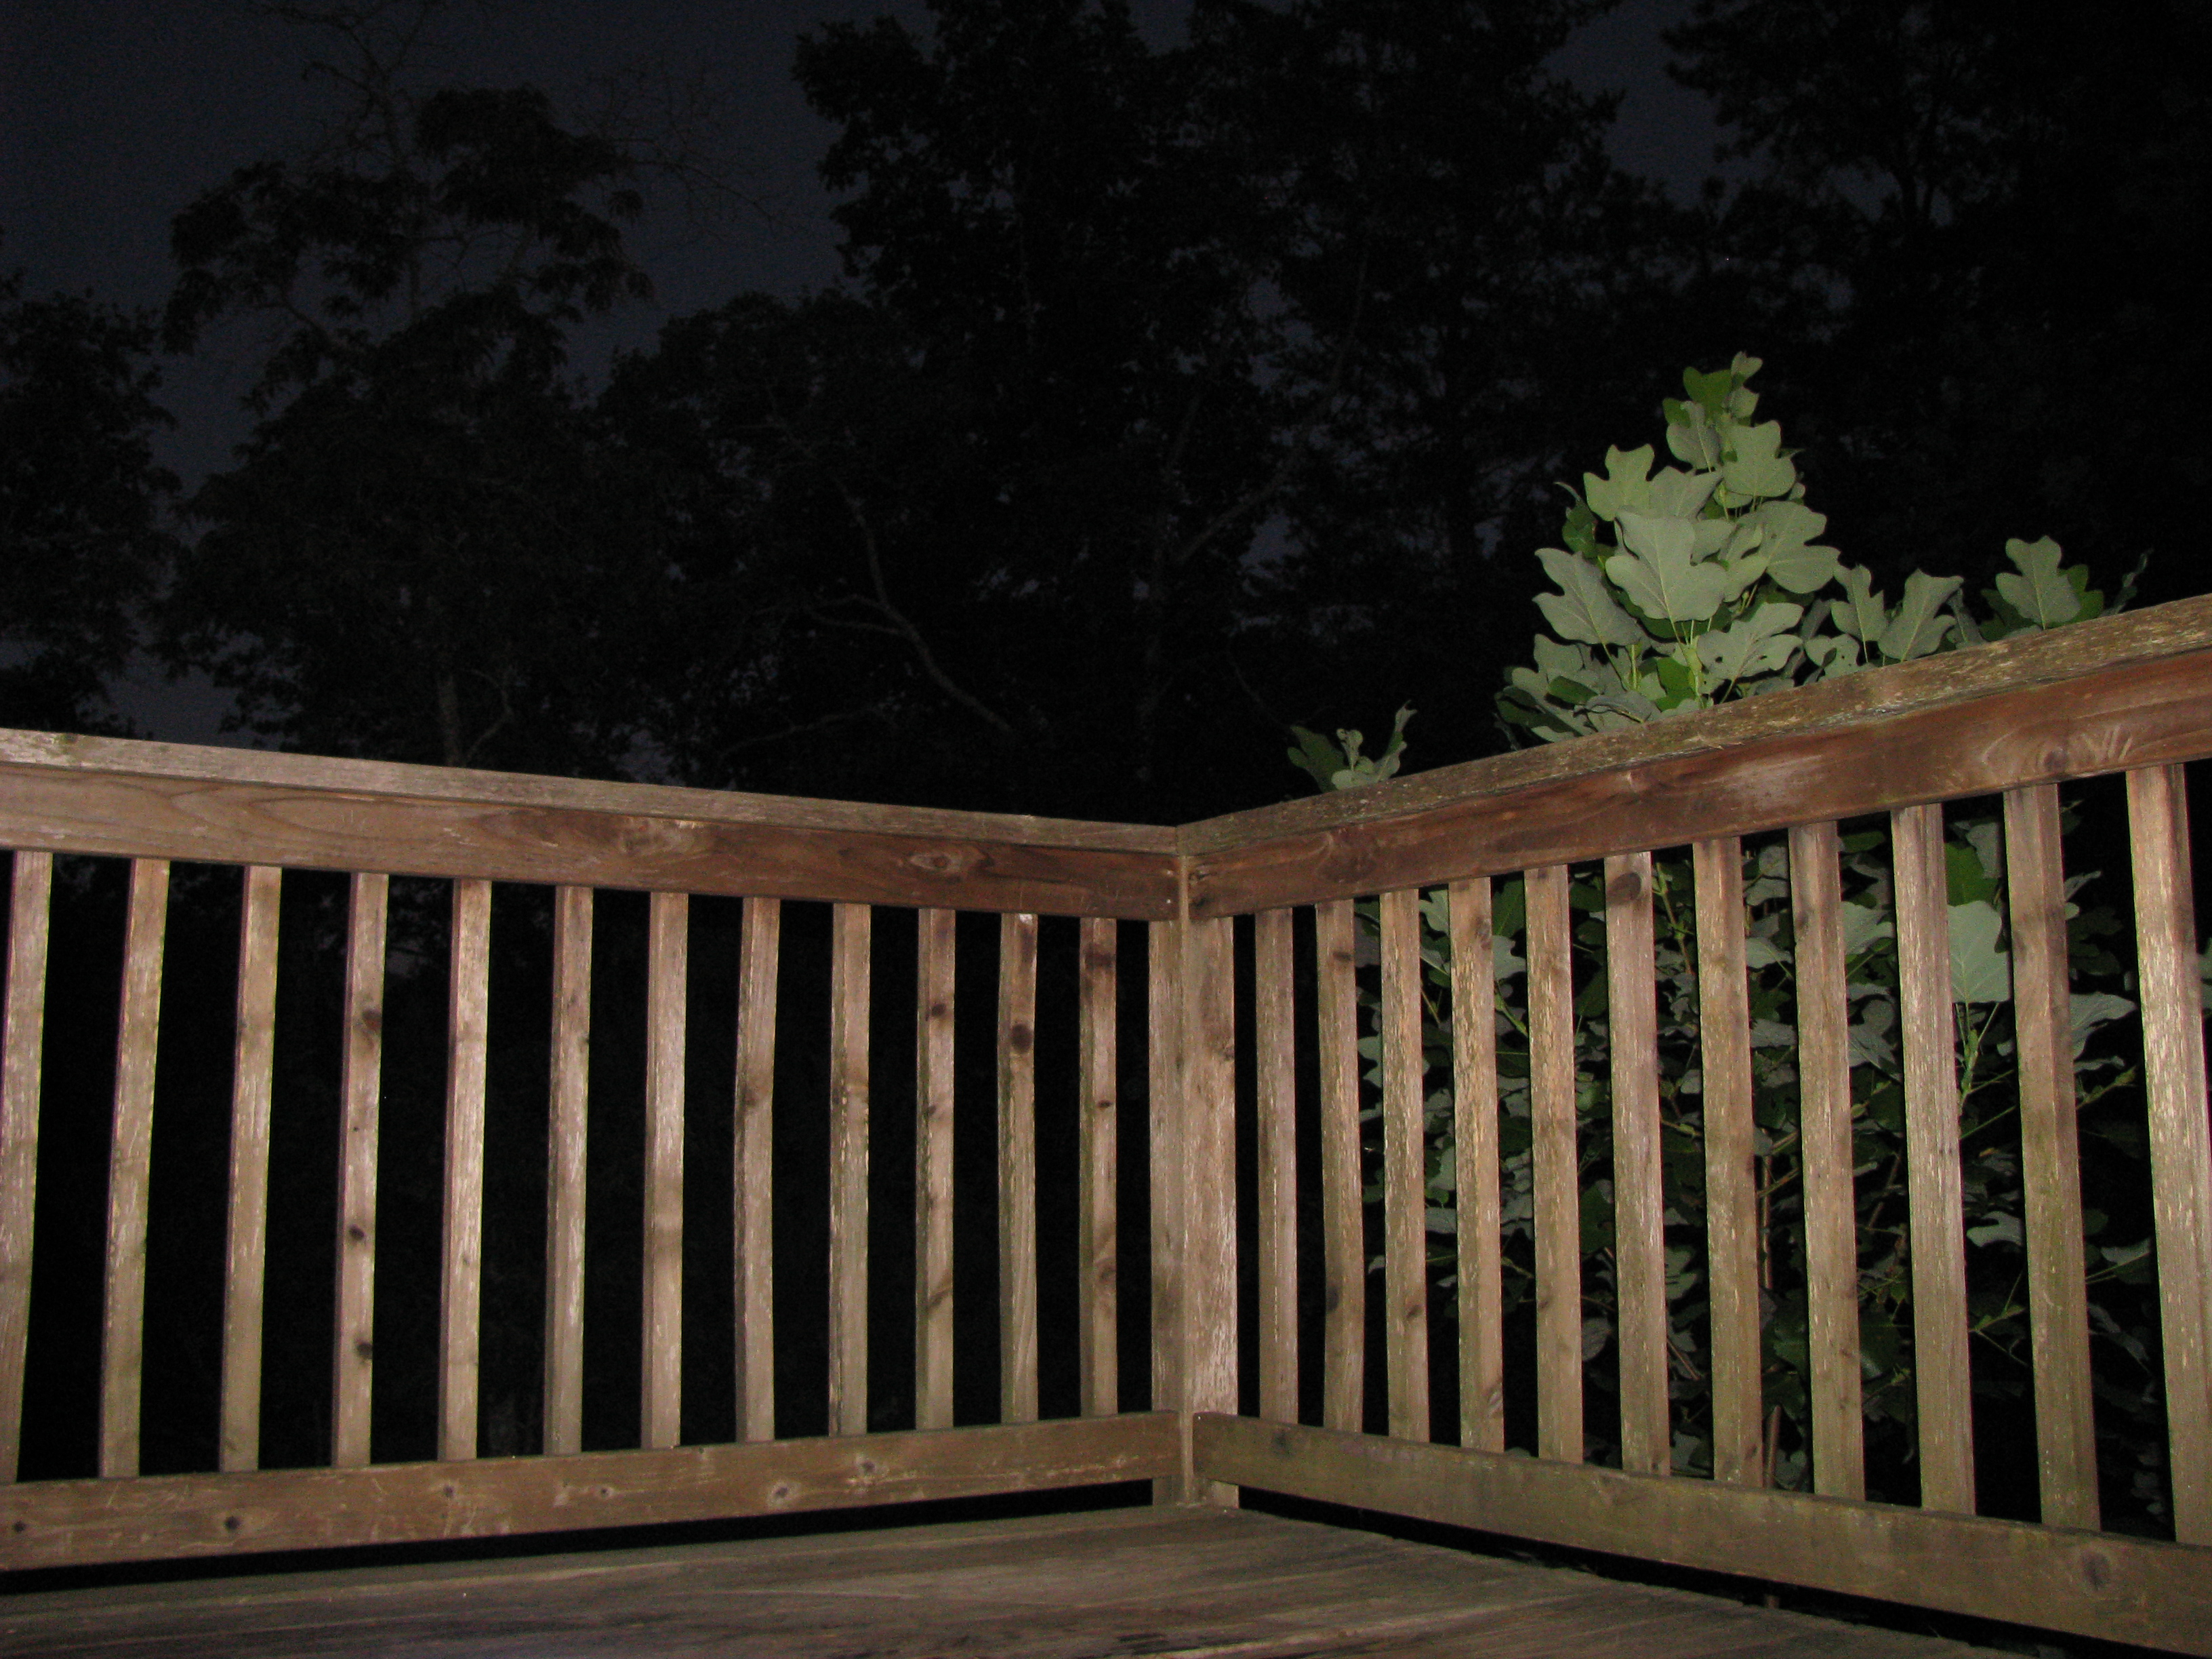 File:Deck Railing.JPG - Wikimedia Commons